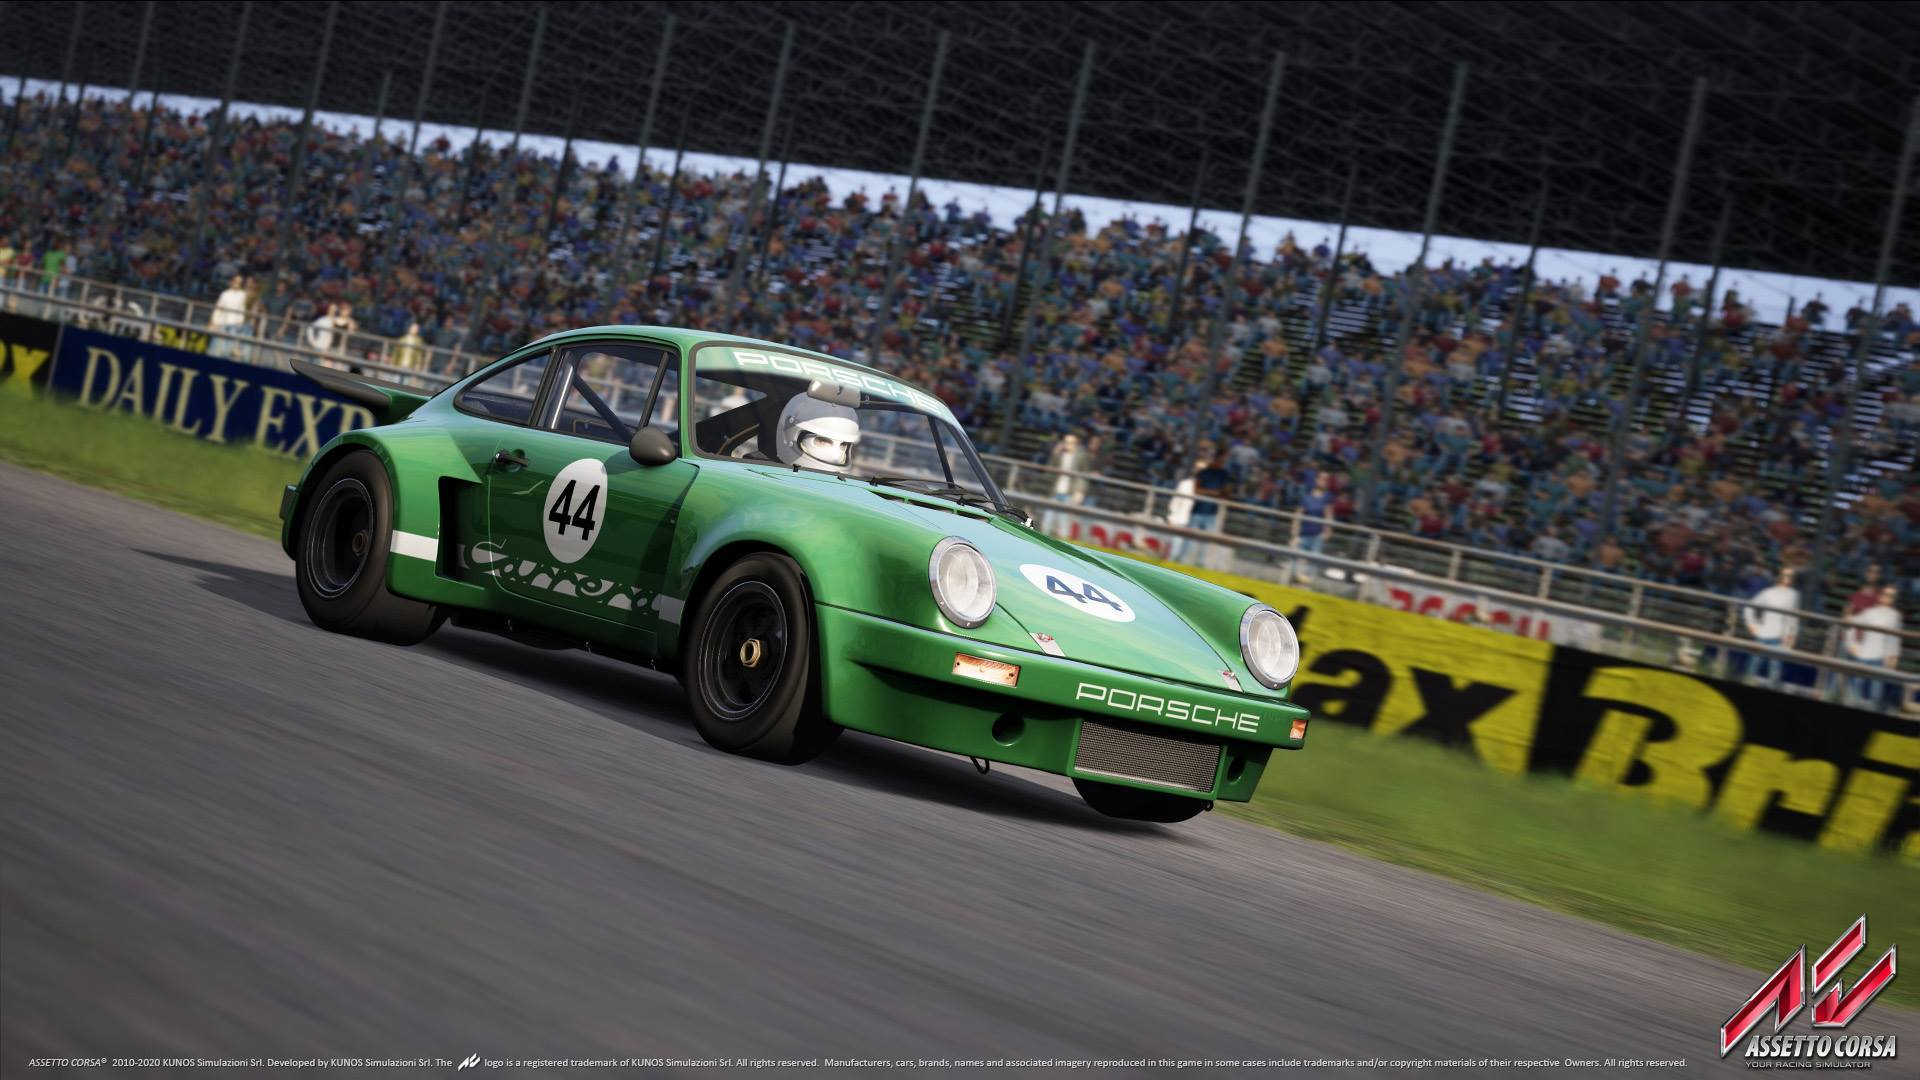 assetto corsa porsche pack volume 1 arrives on ps4 still no known date for xb1. Black Bedroom Furniture Sets. Home Design Ideas